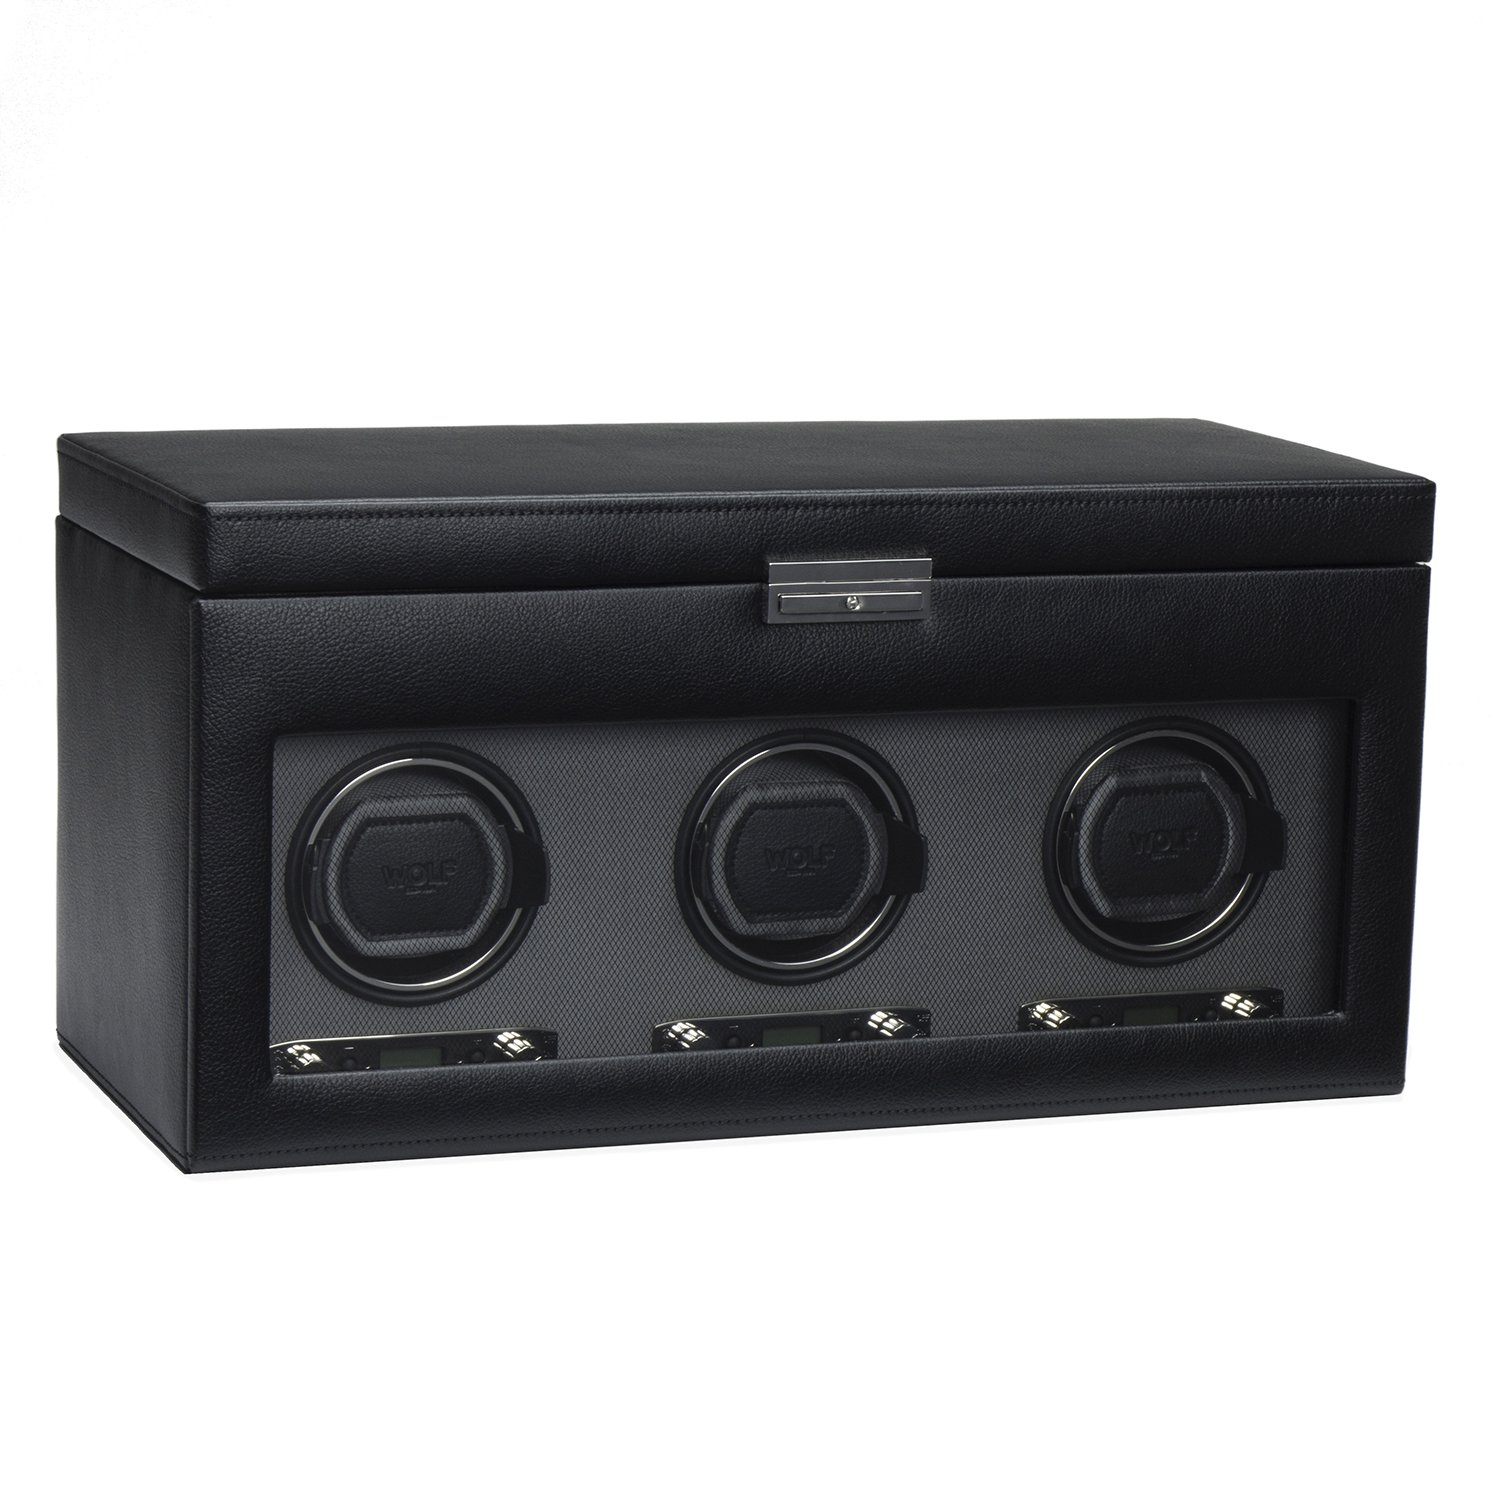 WOLF 456302 Viceroy Triple Watch Winder with Cover and Storage, Black